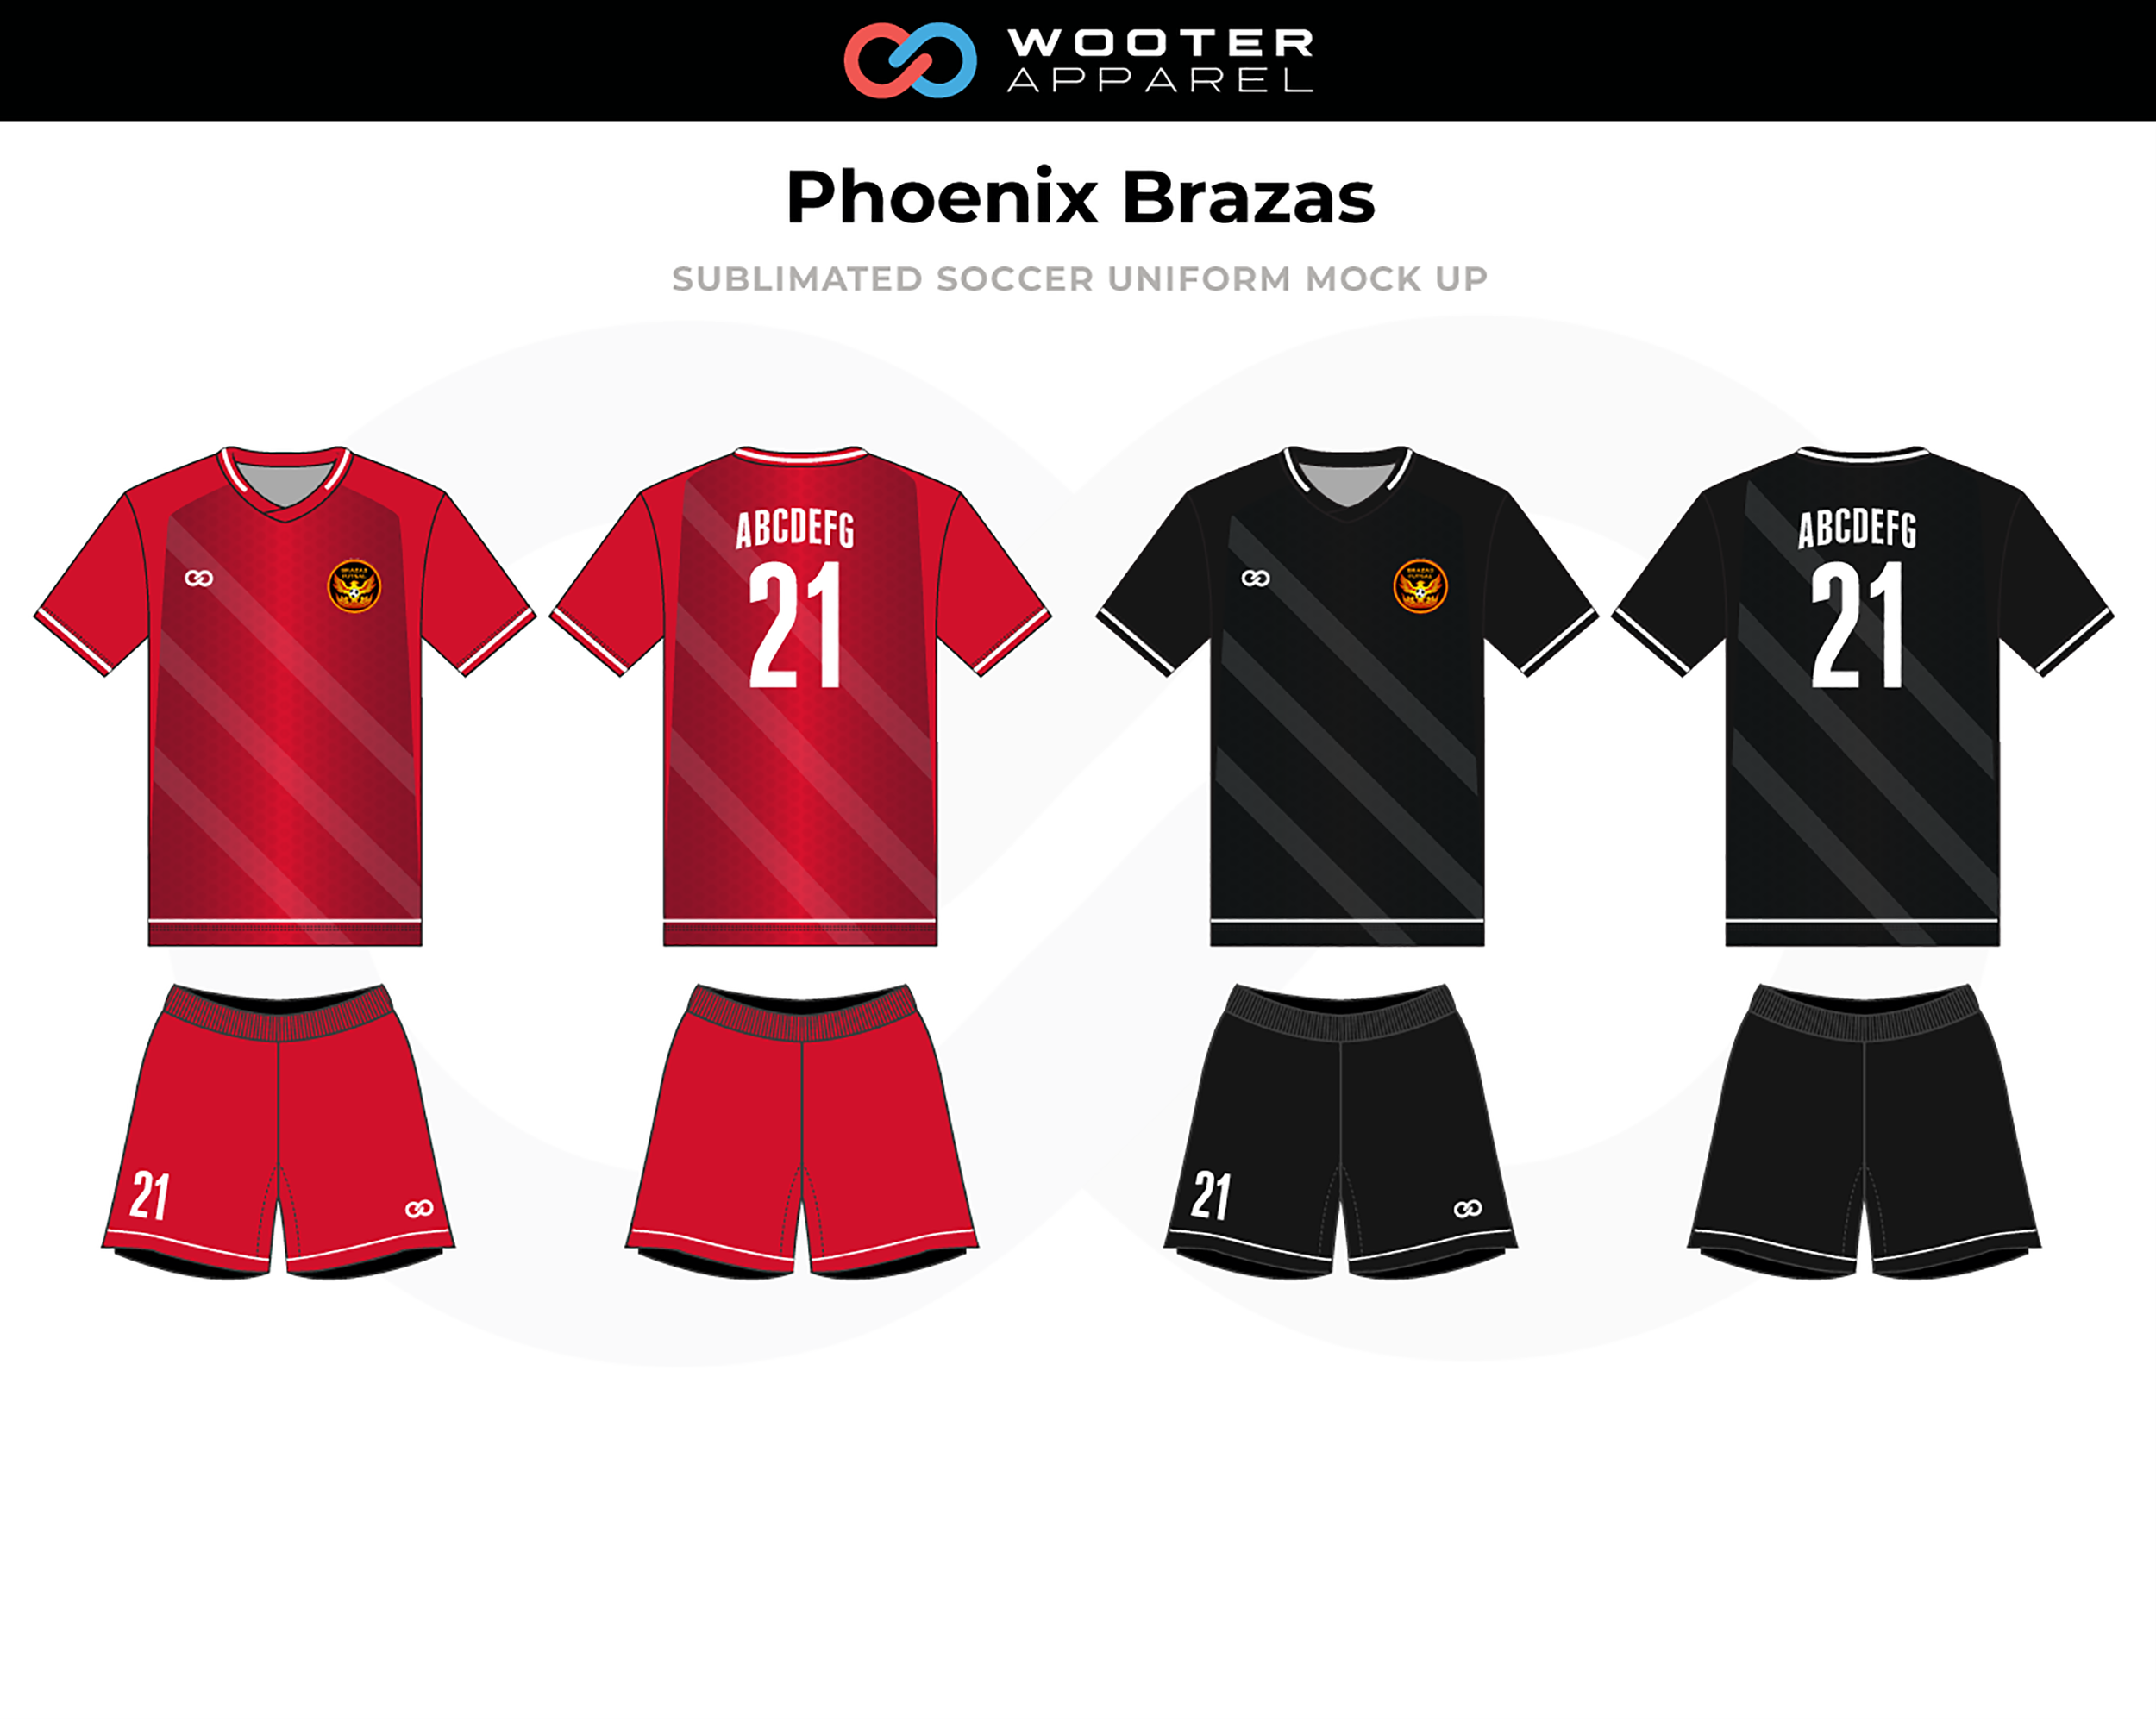 PHOENIX BRAZAS Red Black White Soccer Uniforms, Jerseys, and Shorts